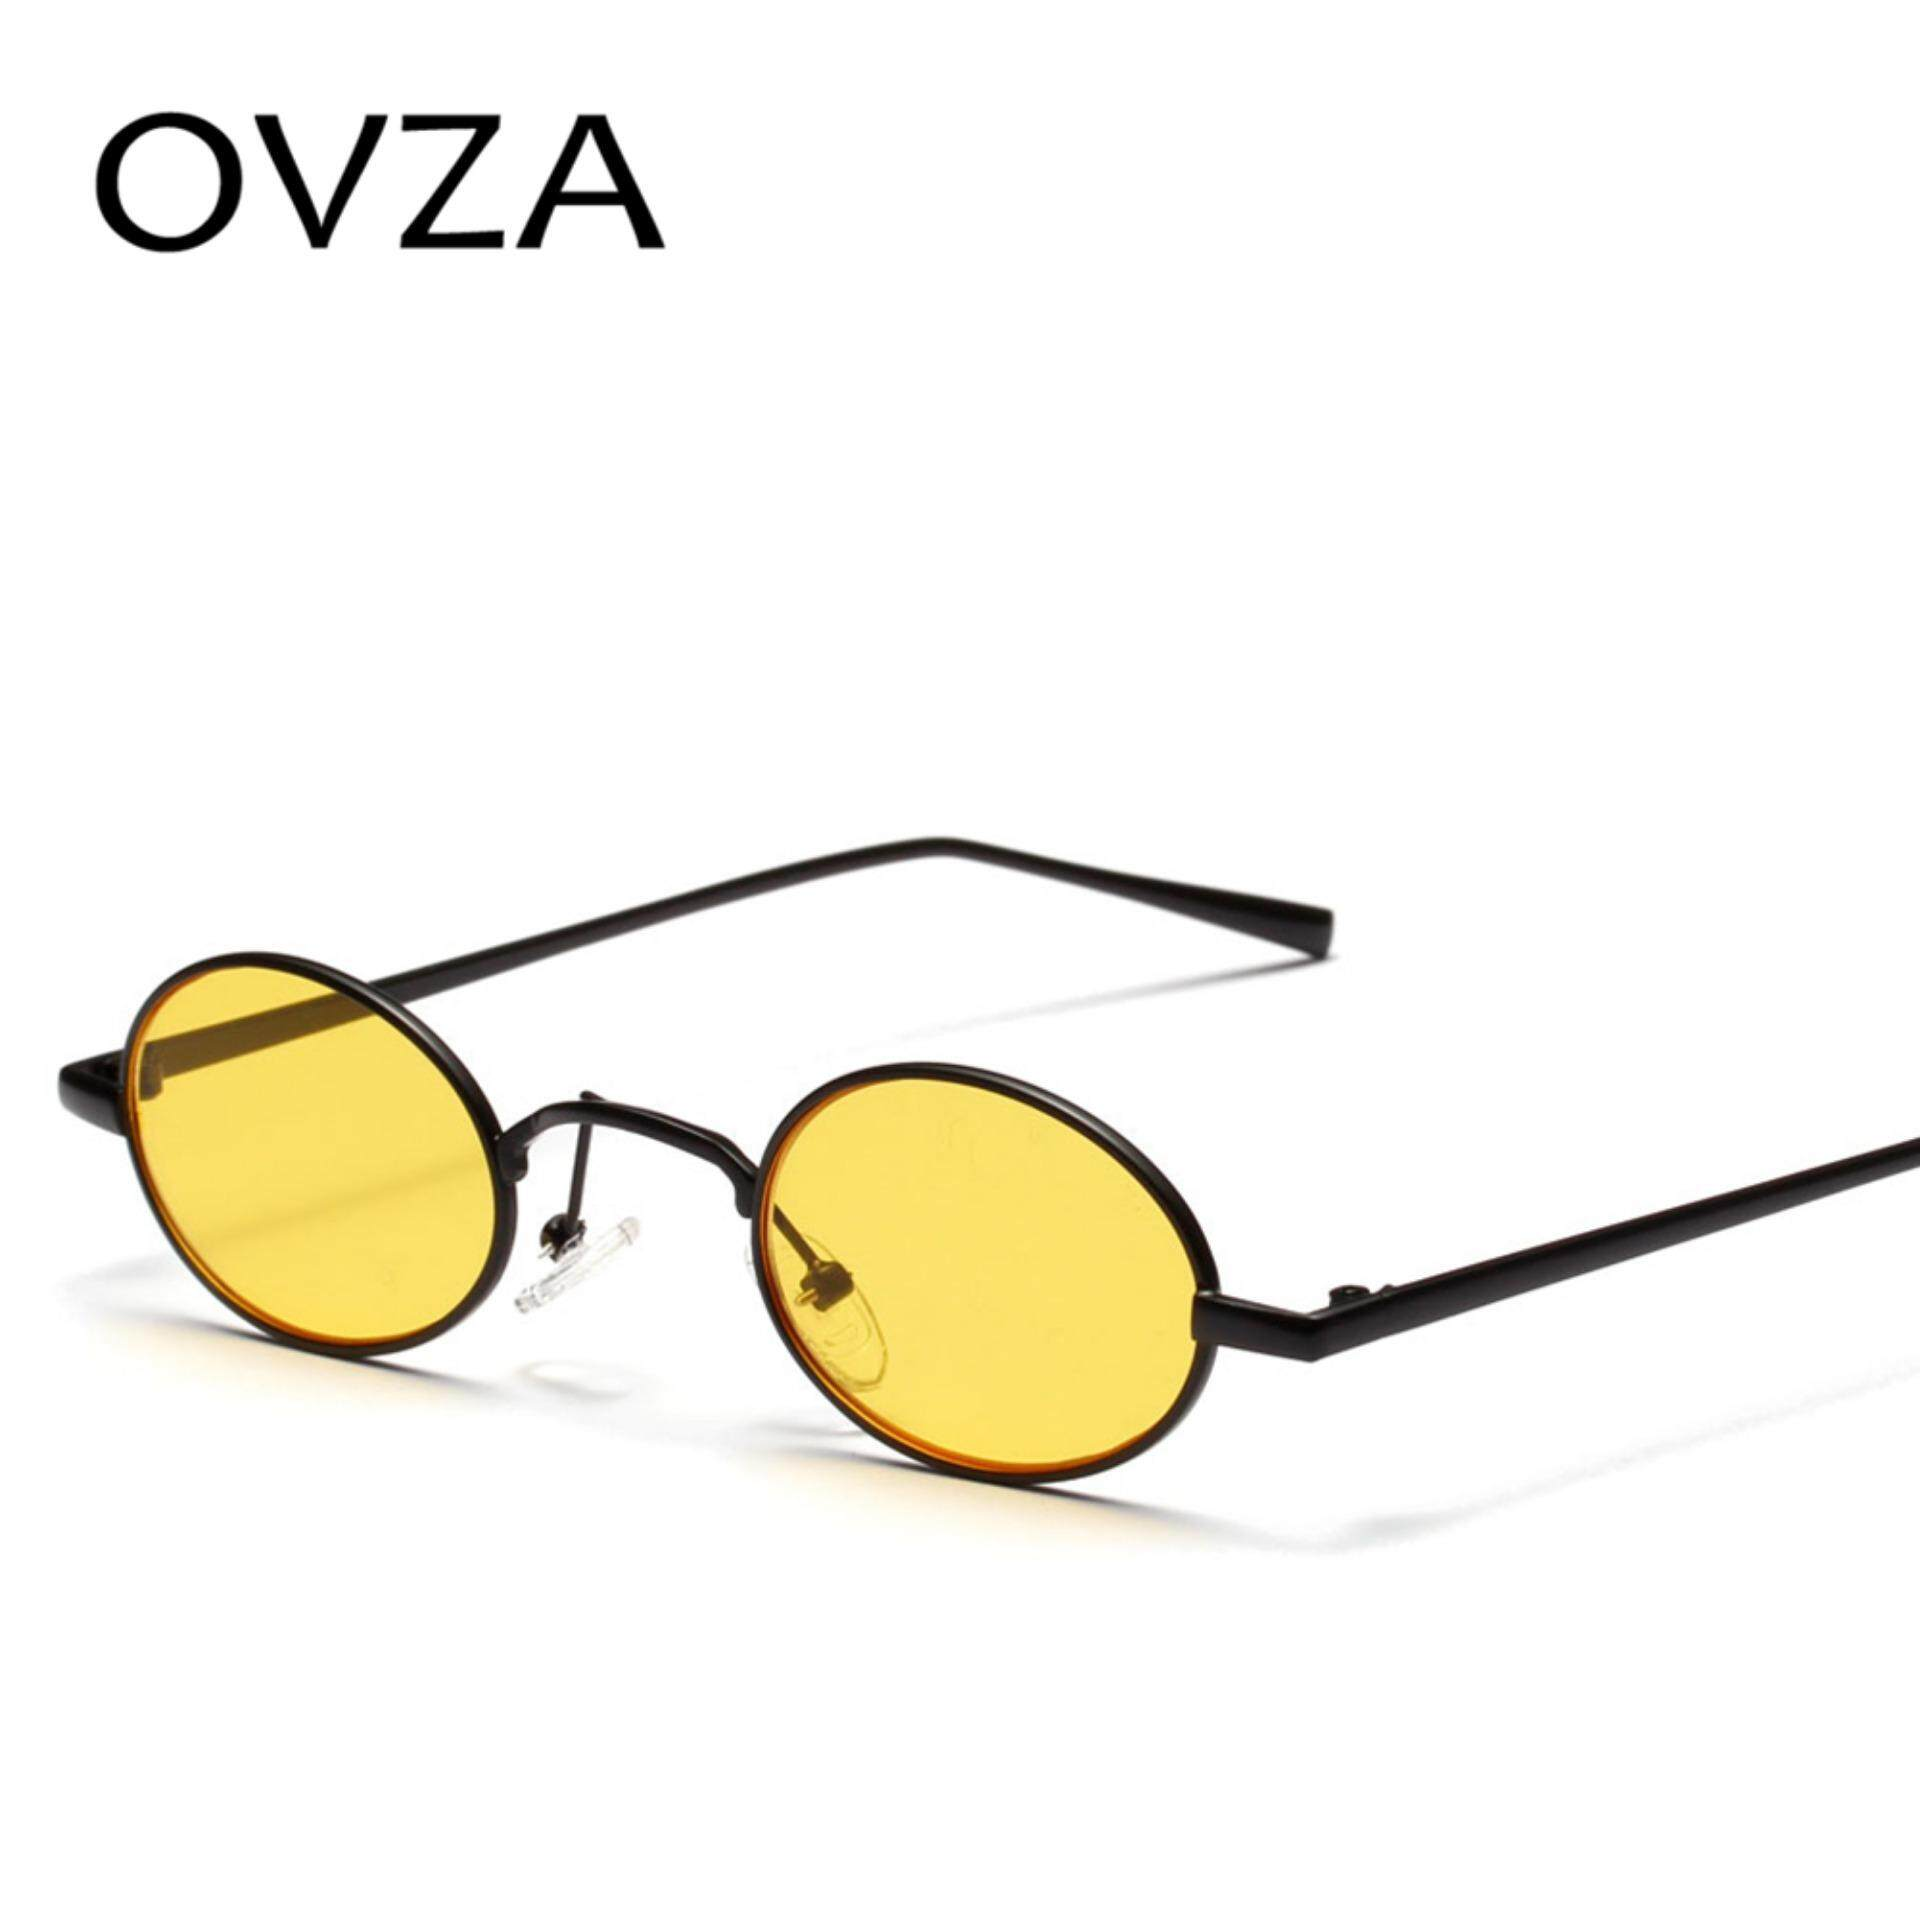 2c85d1360a1 OVZA Retro Oval Sunglasses Women Punk Style Small Sunglasses for Men Metal  Narrow Glasses Red Vintage